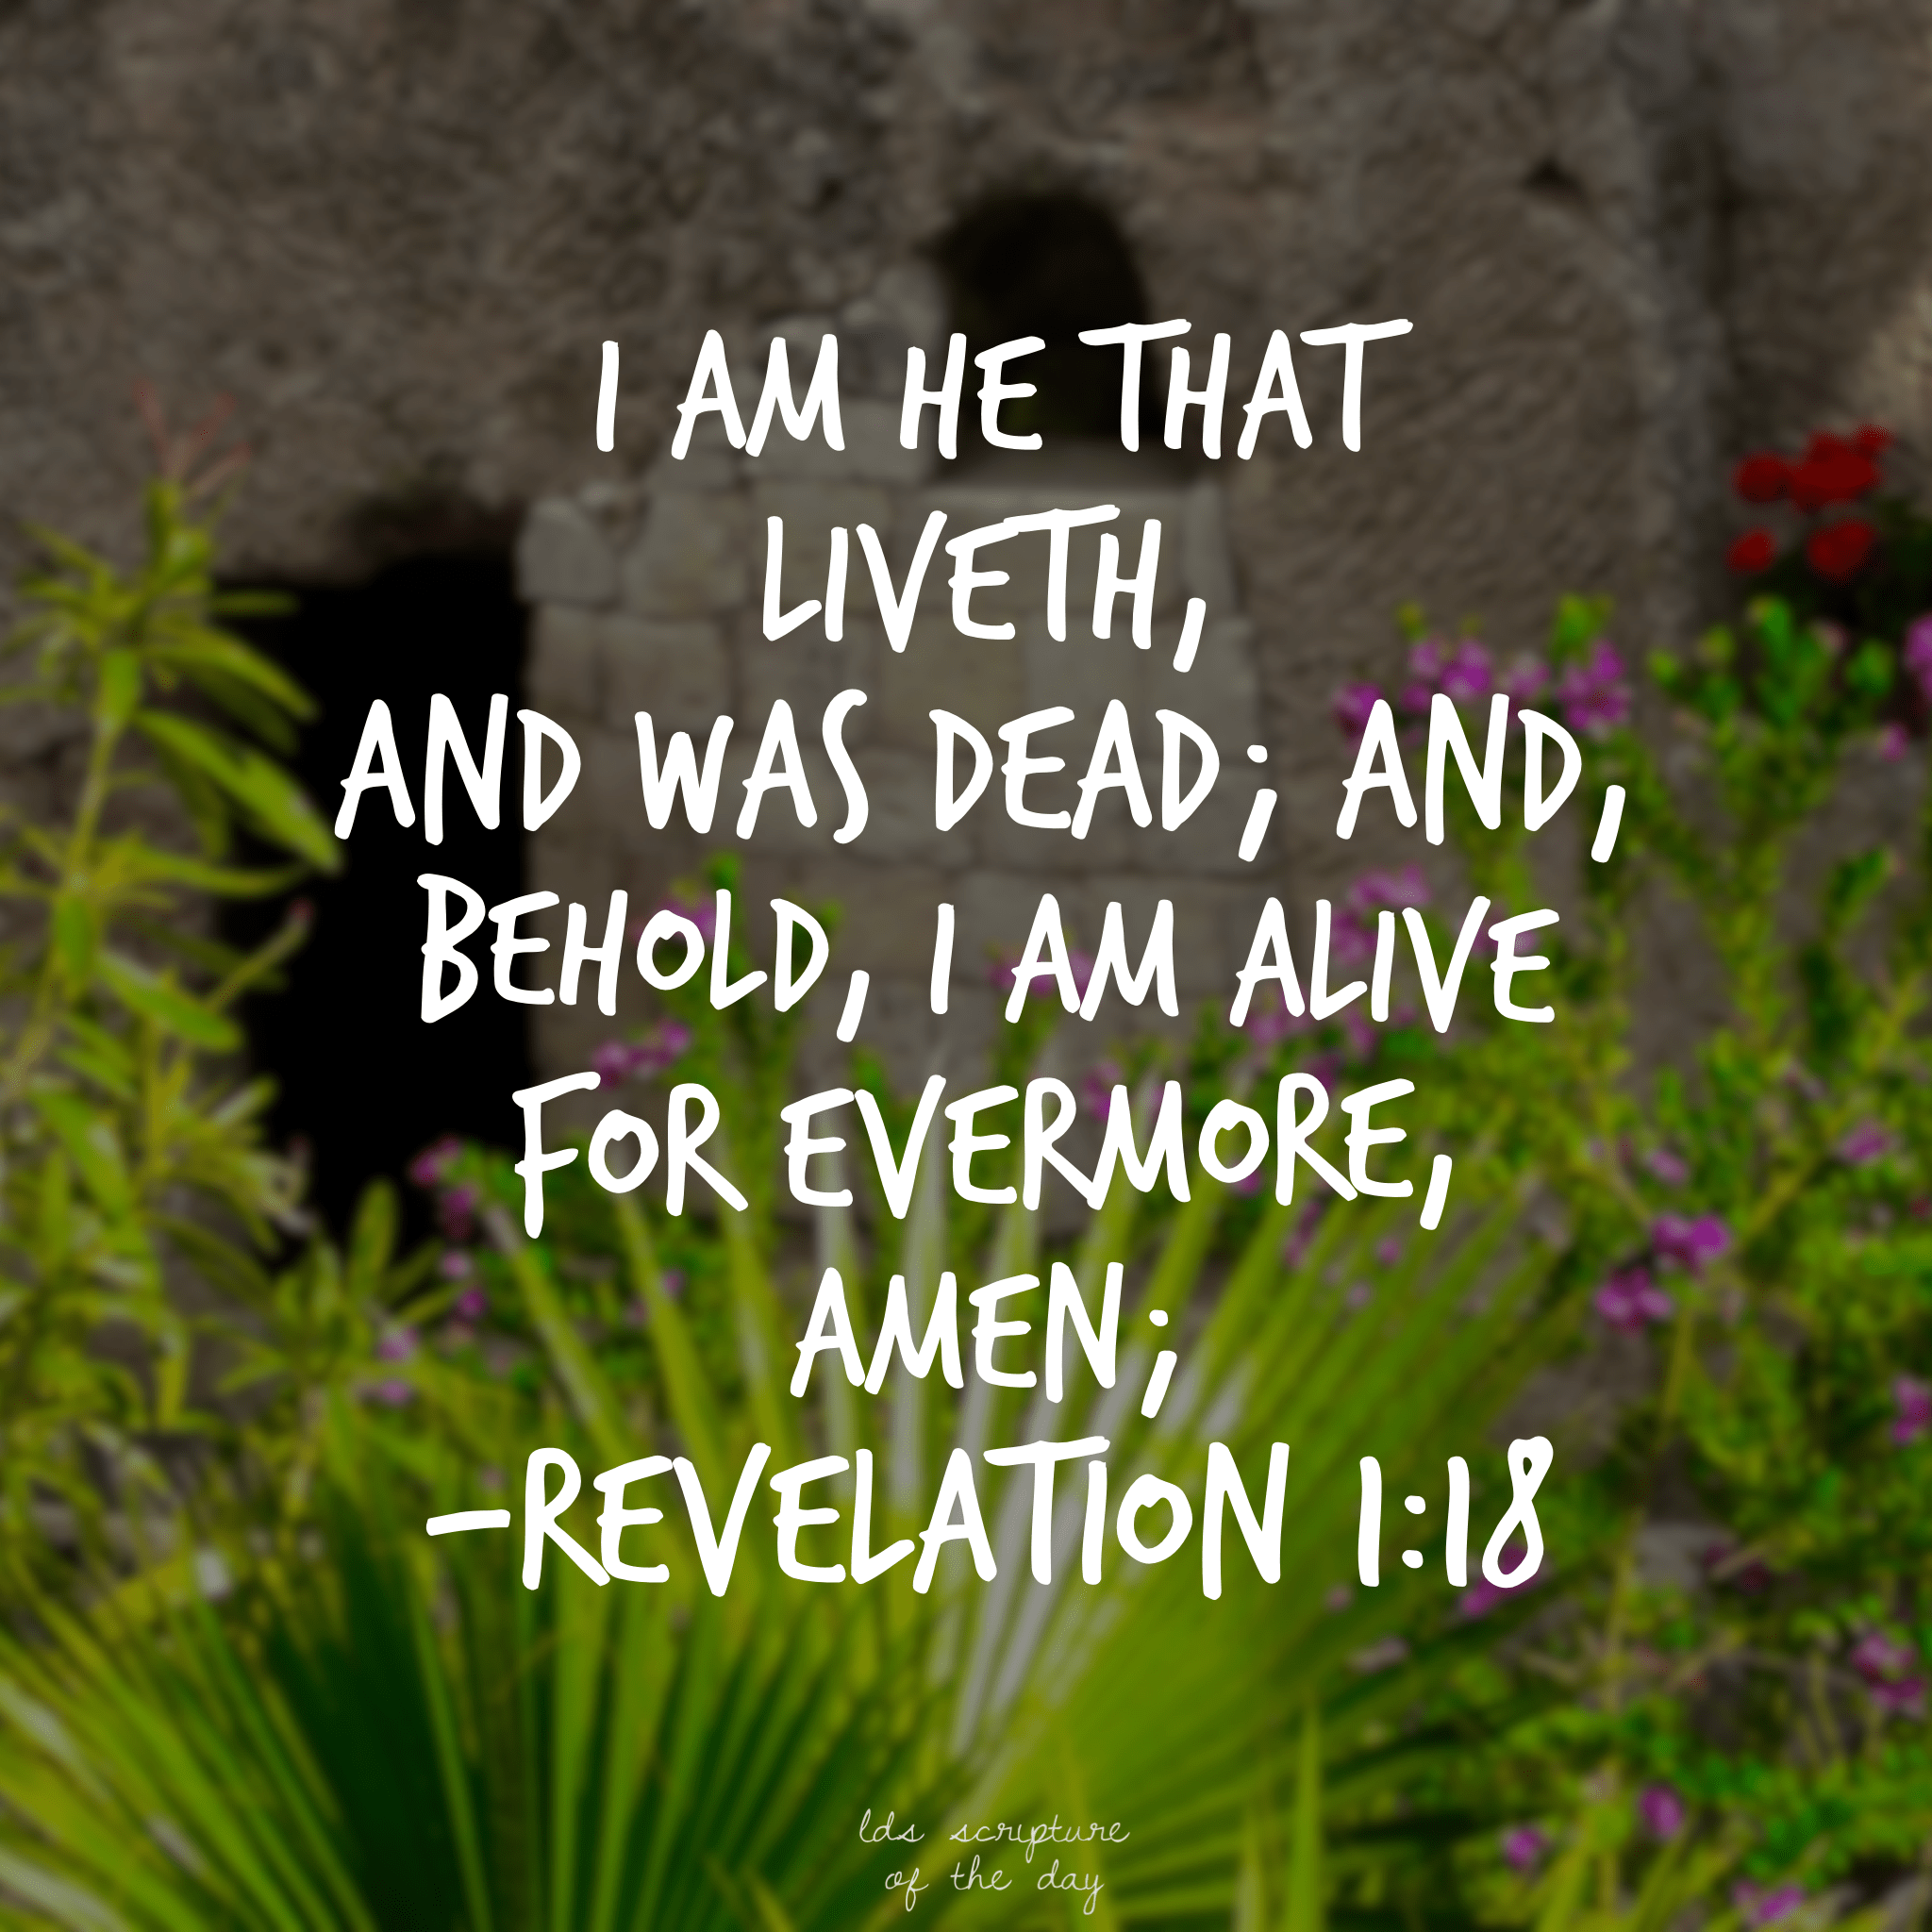 I am he that liveth, and was dead; and, behold, I am alive for evermore, Amen; Revelation 1:18